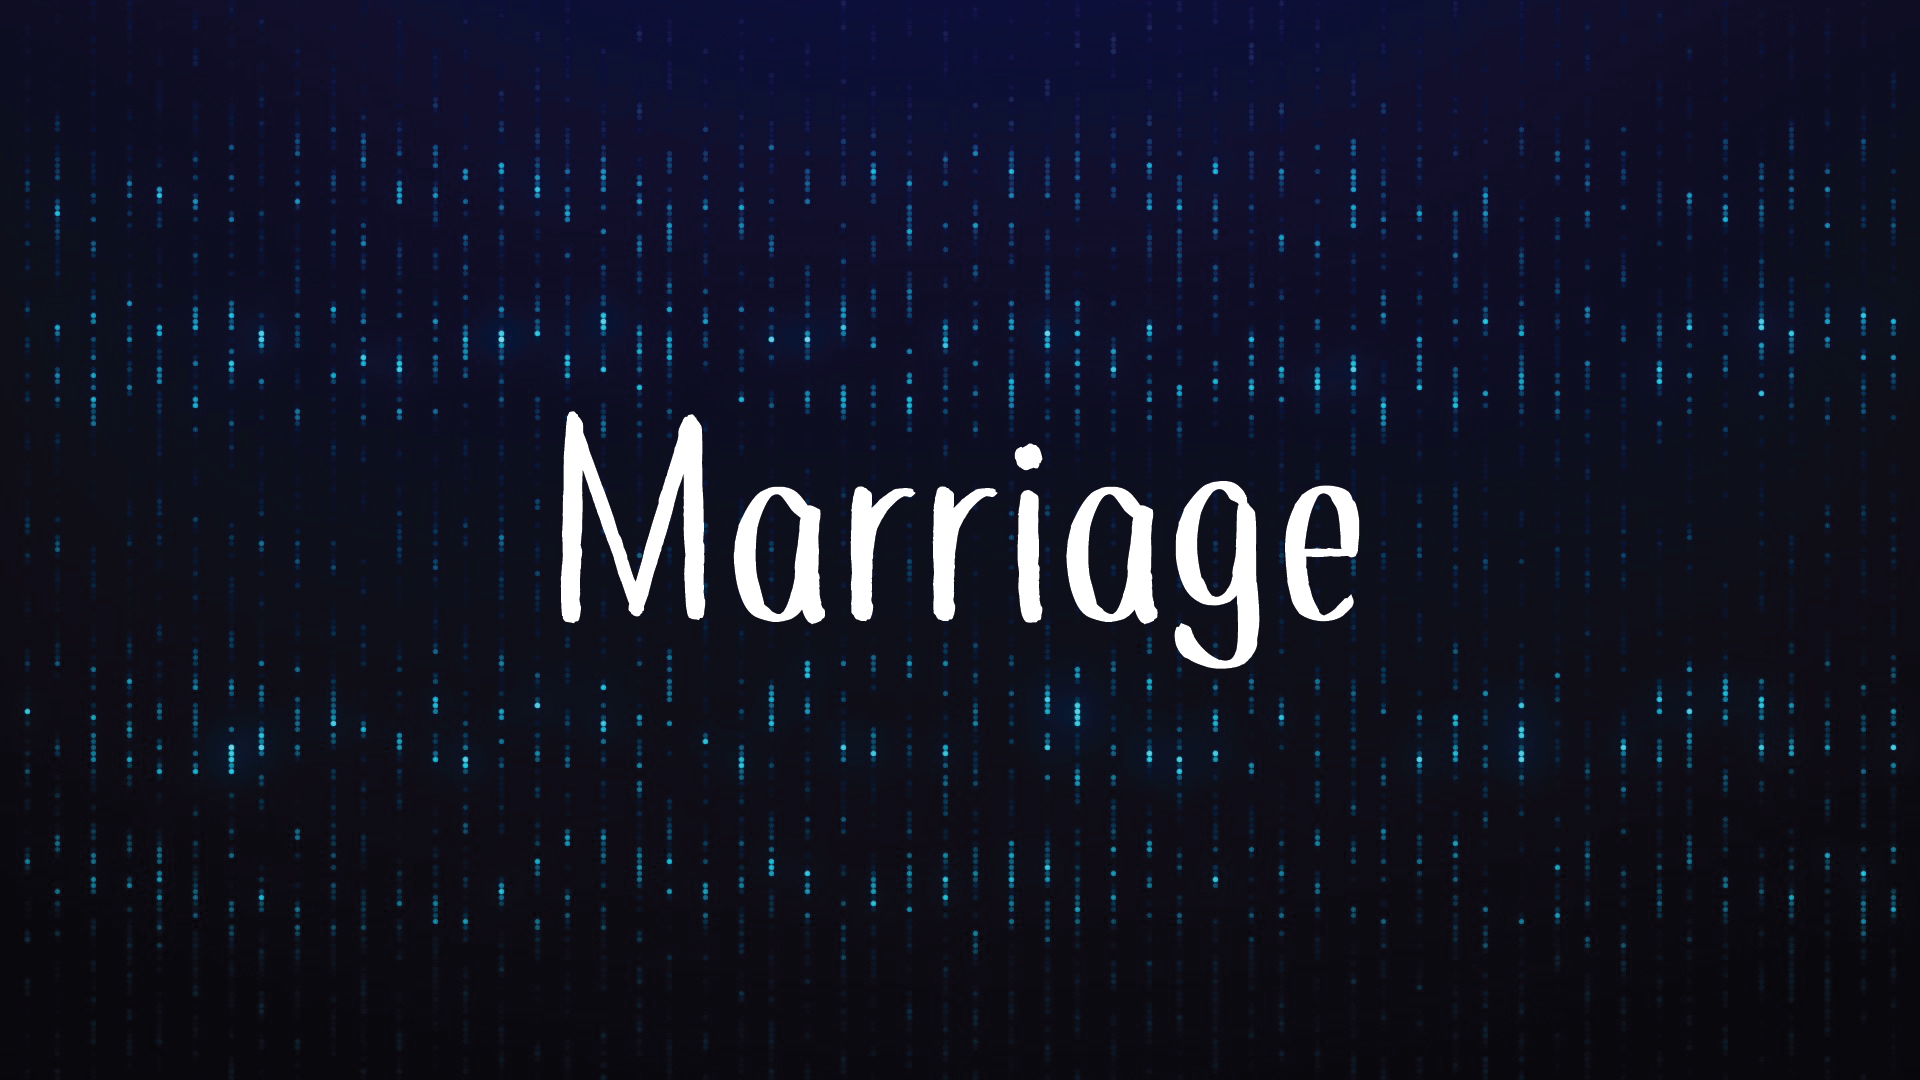 Marriage 01